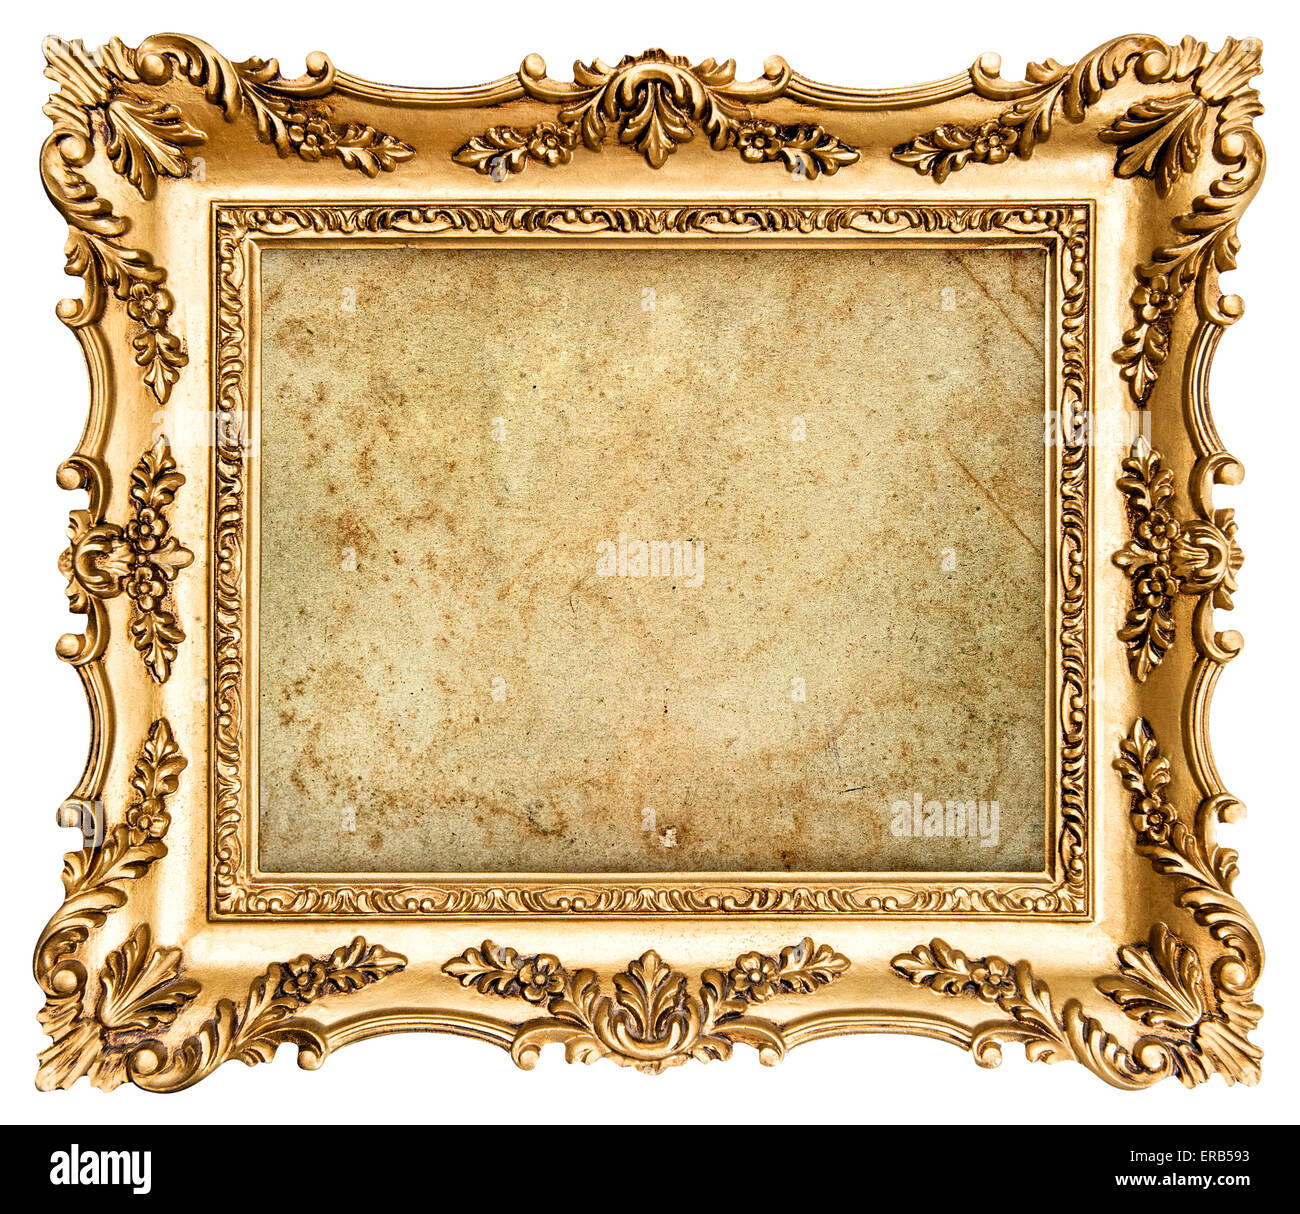 Baroque style golden picture frame isolated on white background with ...